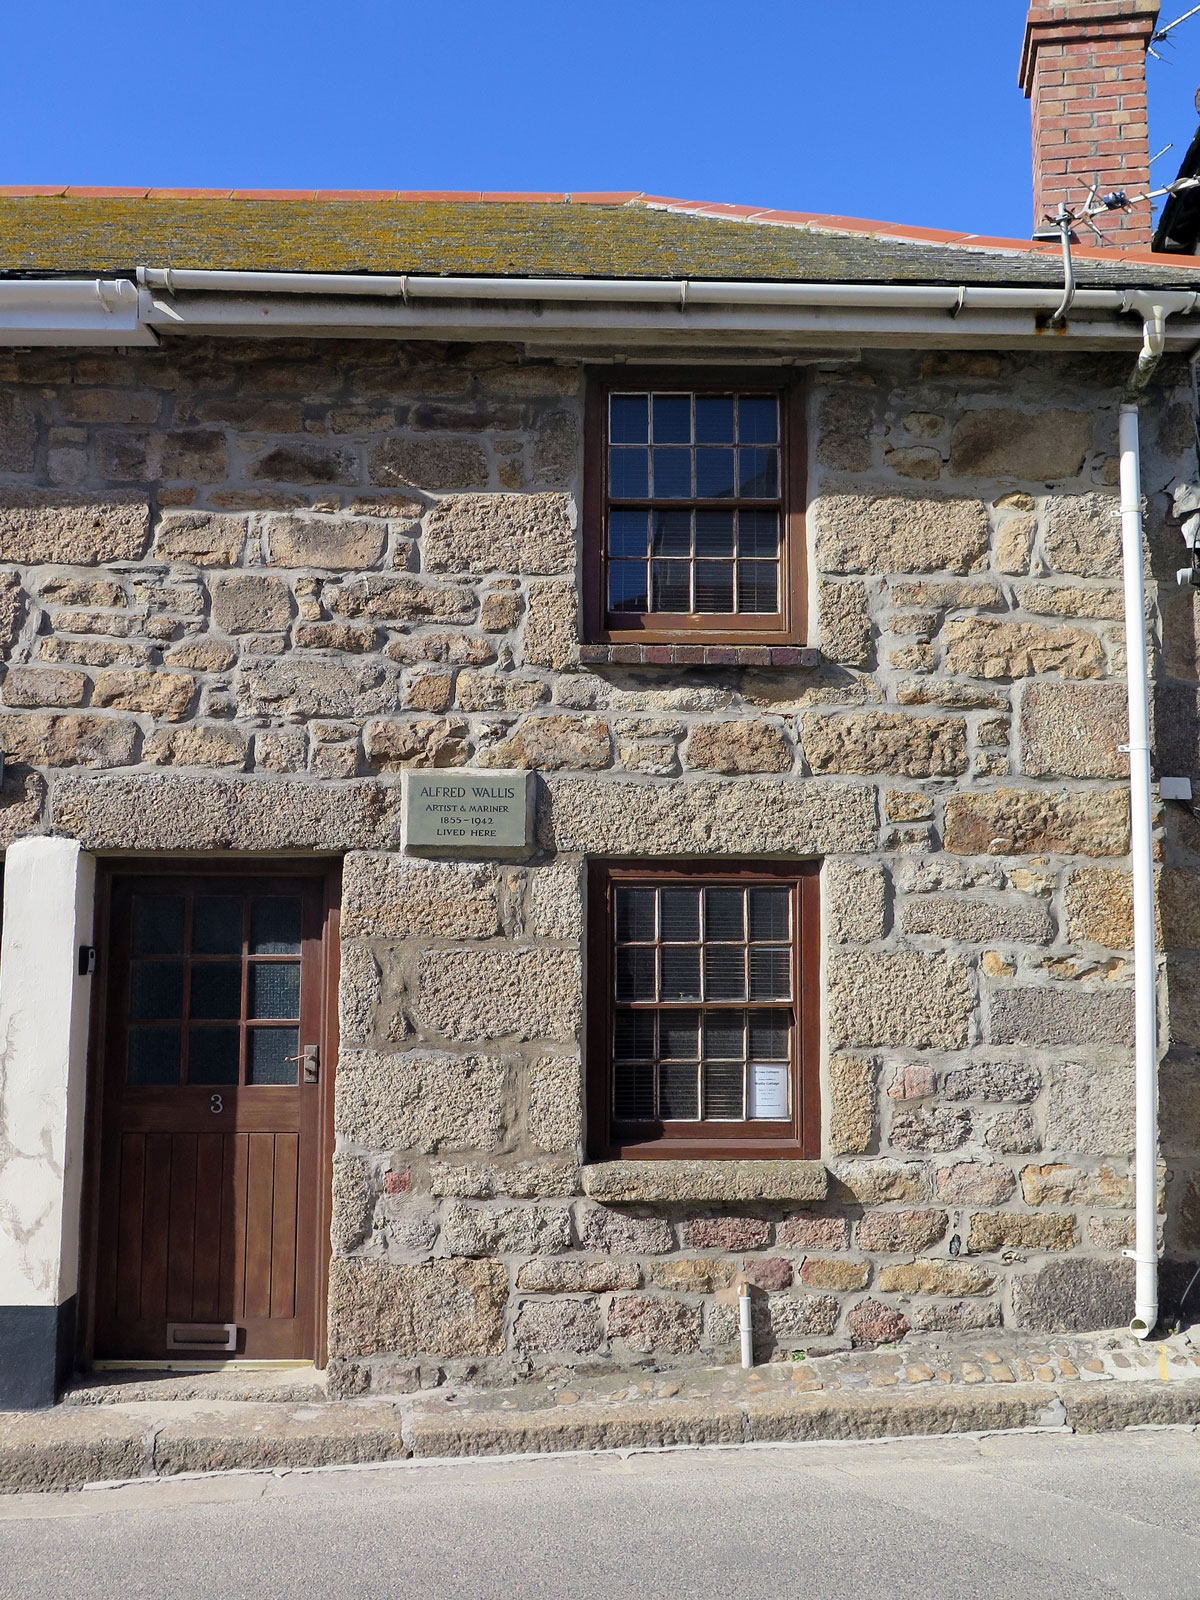 The Home of Alfred Wallis